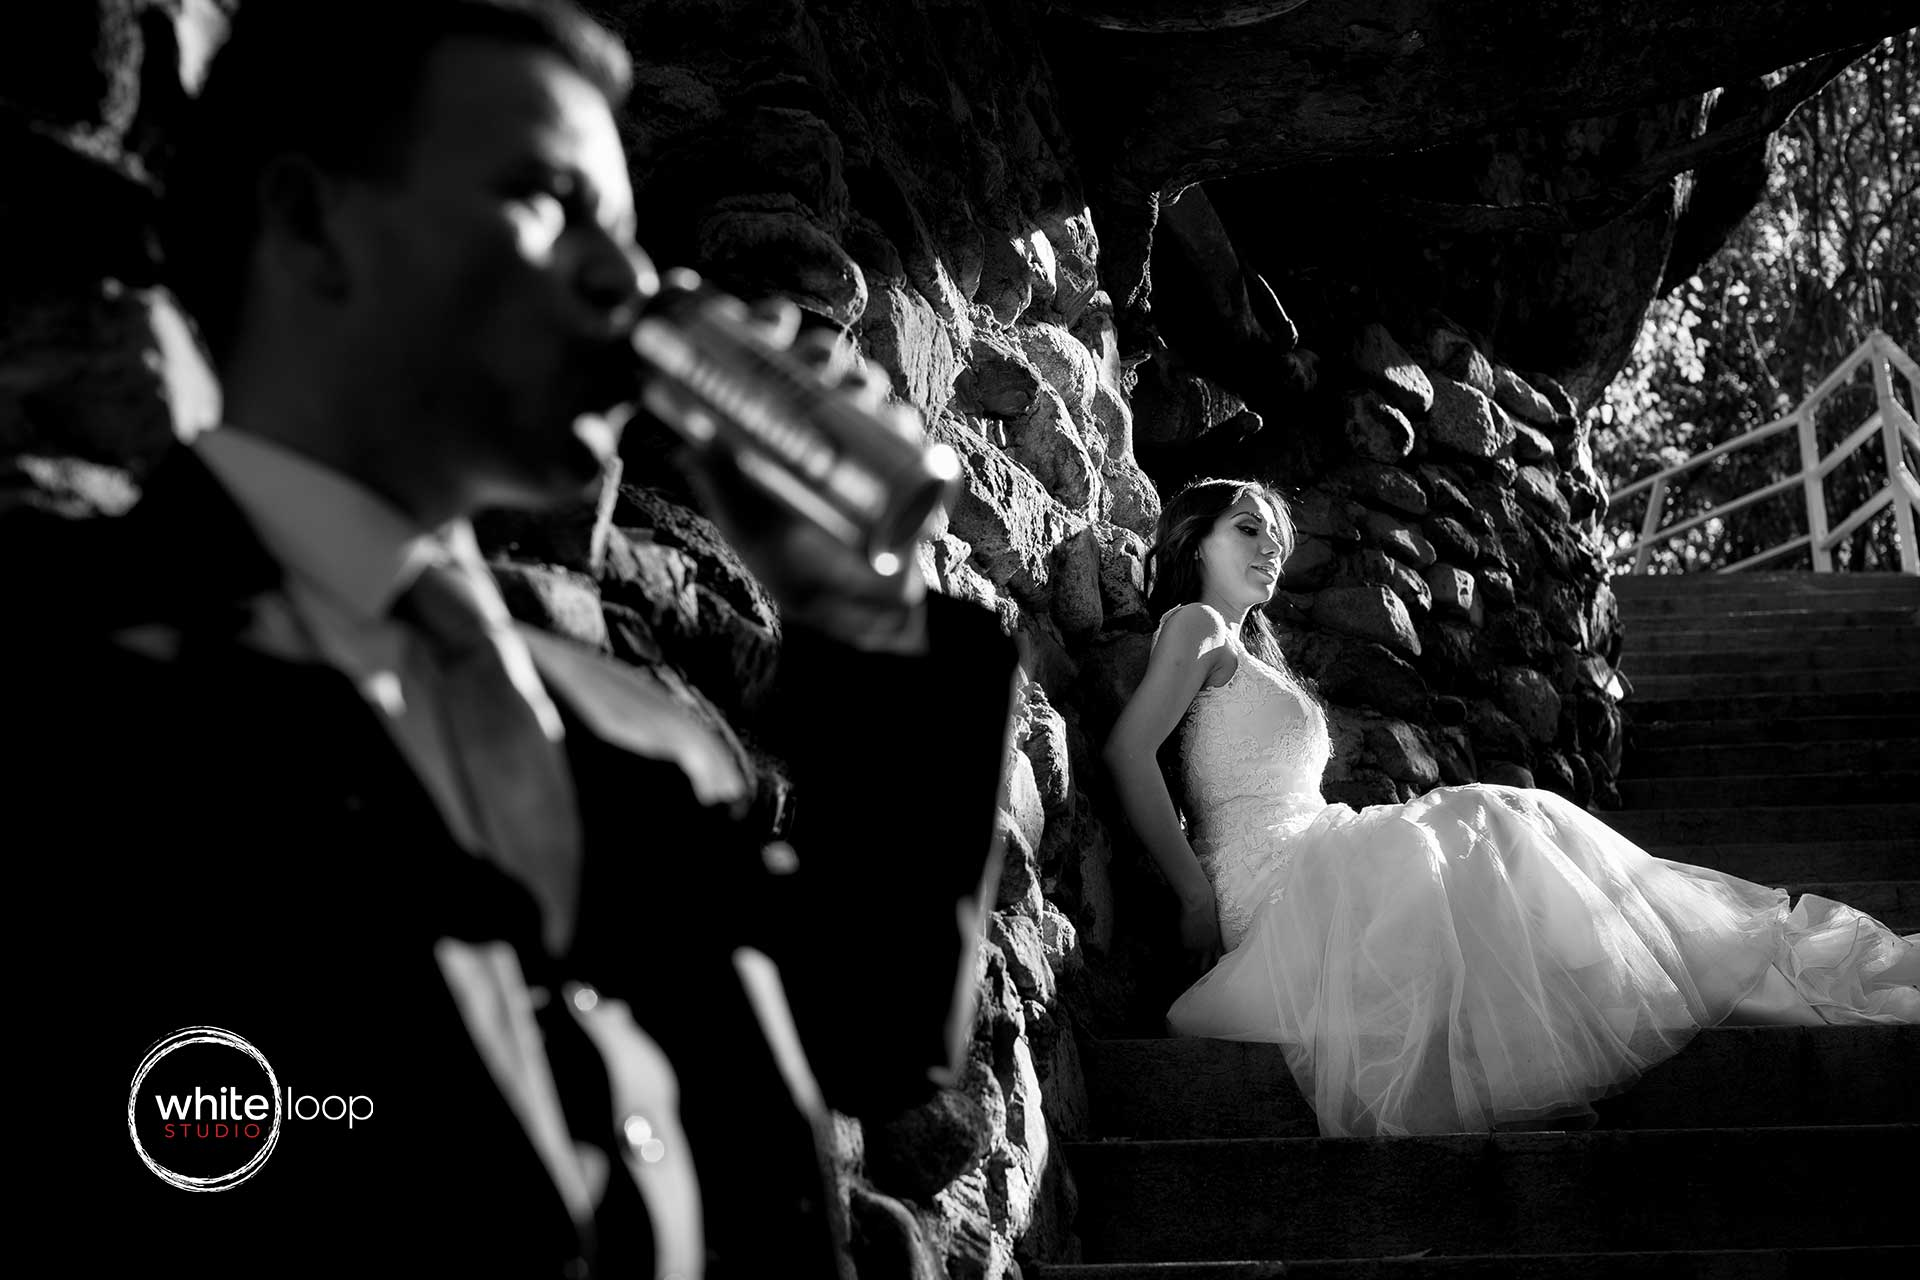 The bride and groom having a good time on the stairs, after the party.